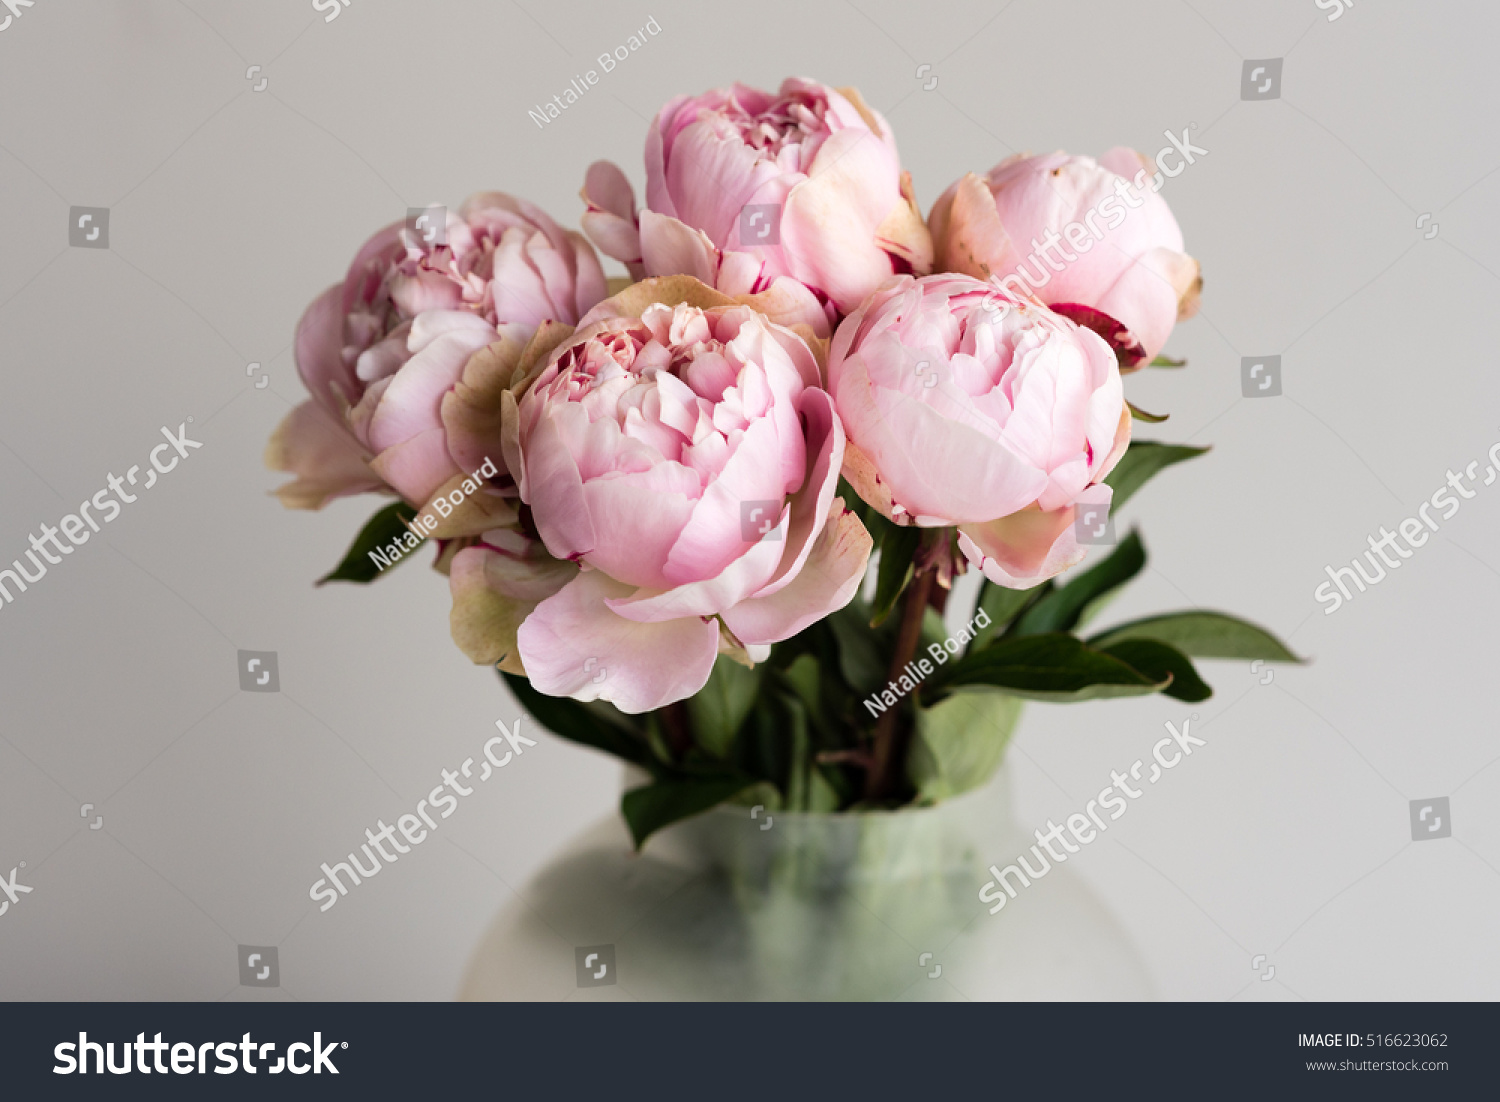 Close pink peonies glass vase against stock photo 516623062 close up of pink peonies in glass vase against neutral background selective focus reviewsmspy